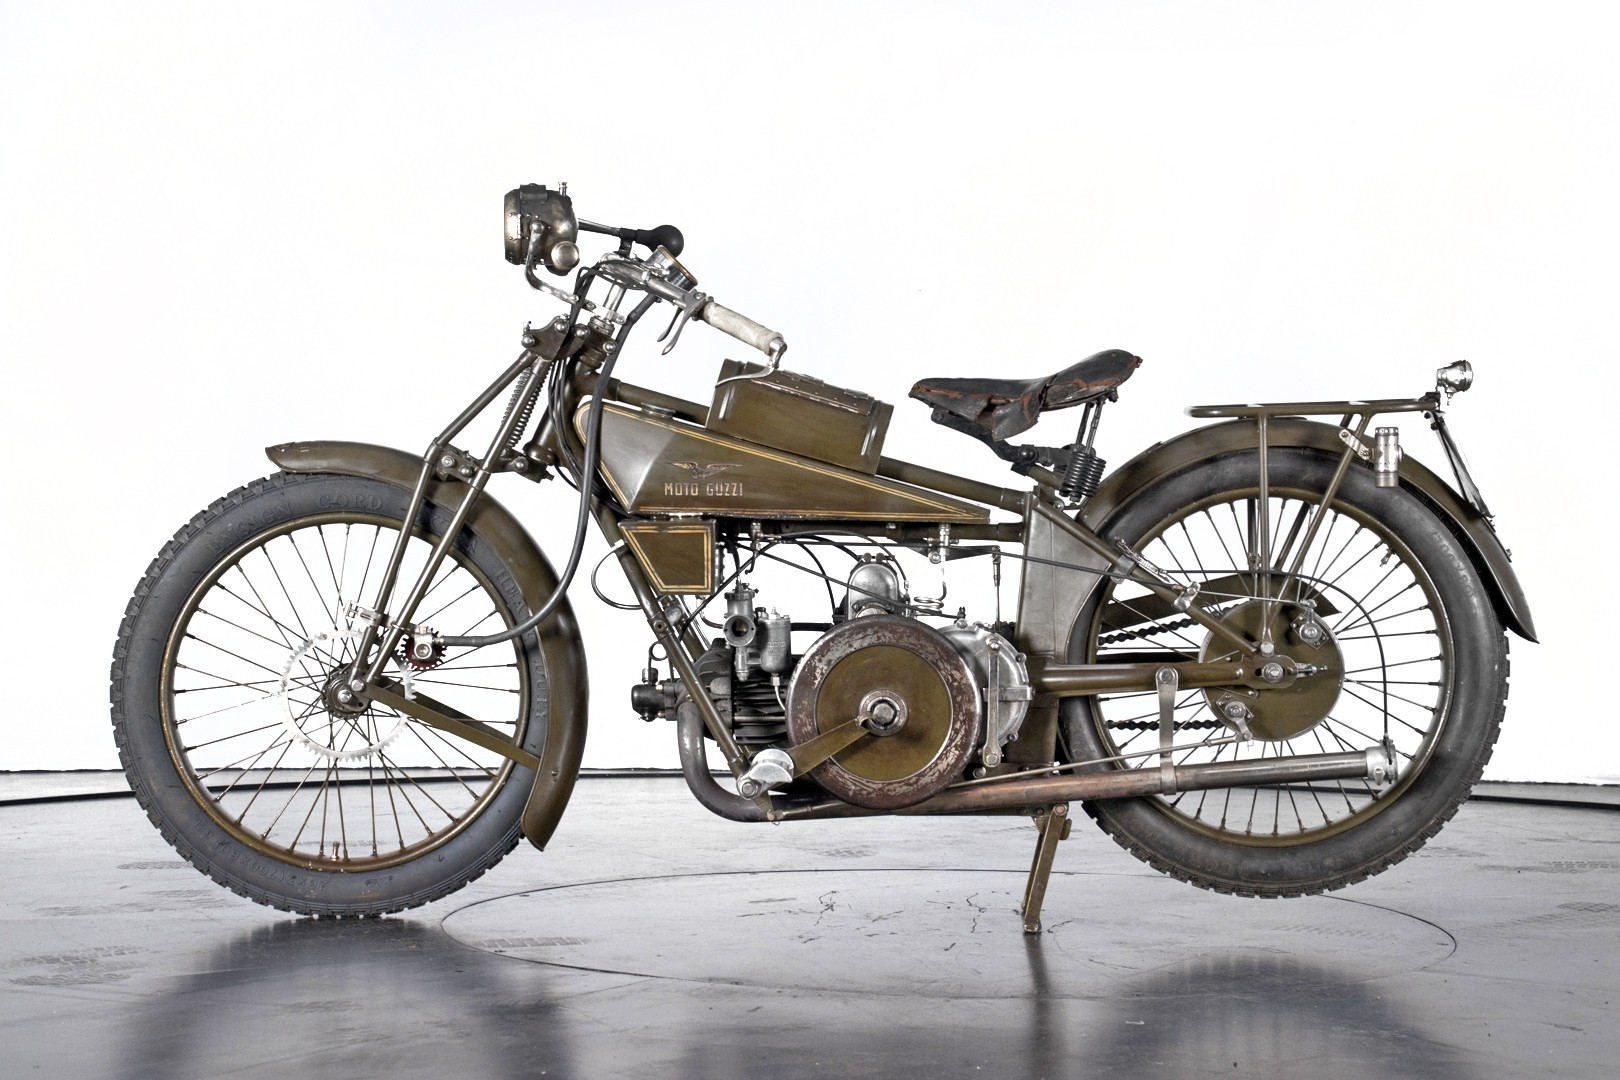 Vintage (used) motorcycles' values: 1924 Moto Guzzi 500 Normale approx. $66,435 for sale